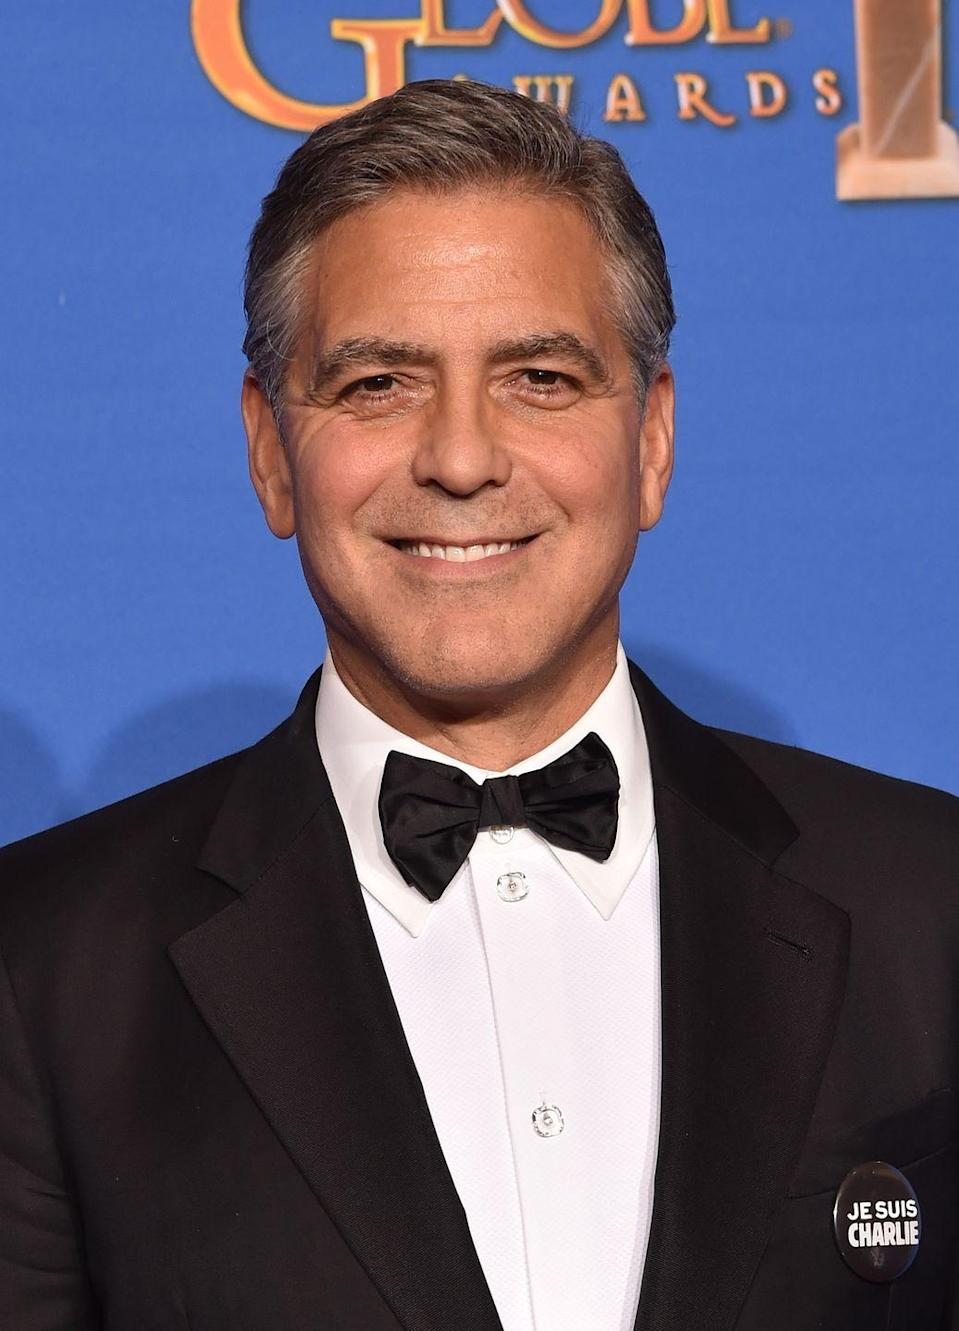 """<p>Okay, so you almost certainly already know what Mr. Clooney has been up to for the past few decades, but there's no harm in a little recap? On top of his numerous big roles in blockbusters like <em>Batman & Robin</em> (1997) and <em>Ocean's Eleven</em> (2001), as well as the much-accoladed <em>The Descendants</em><span class=""""redactor-invisible-space""""> (2011), he married successful lawyer and activist Amal Alamuddin in 2014.</span></p>"""